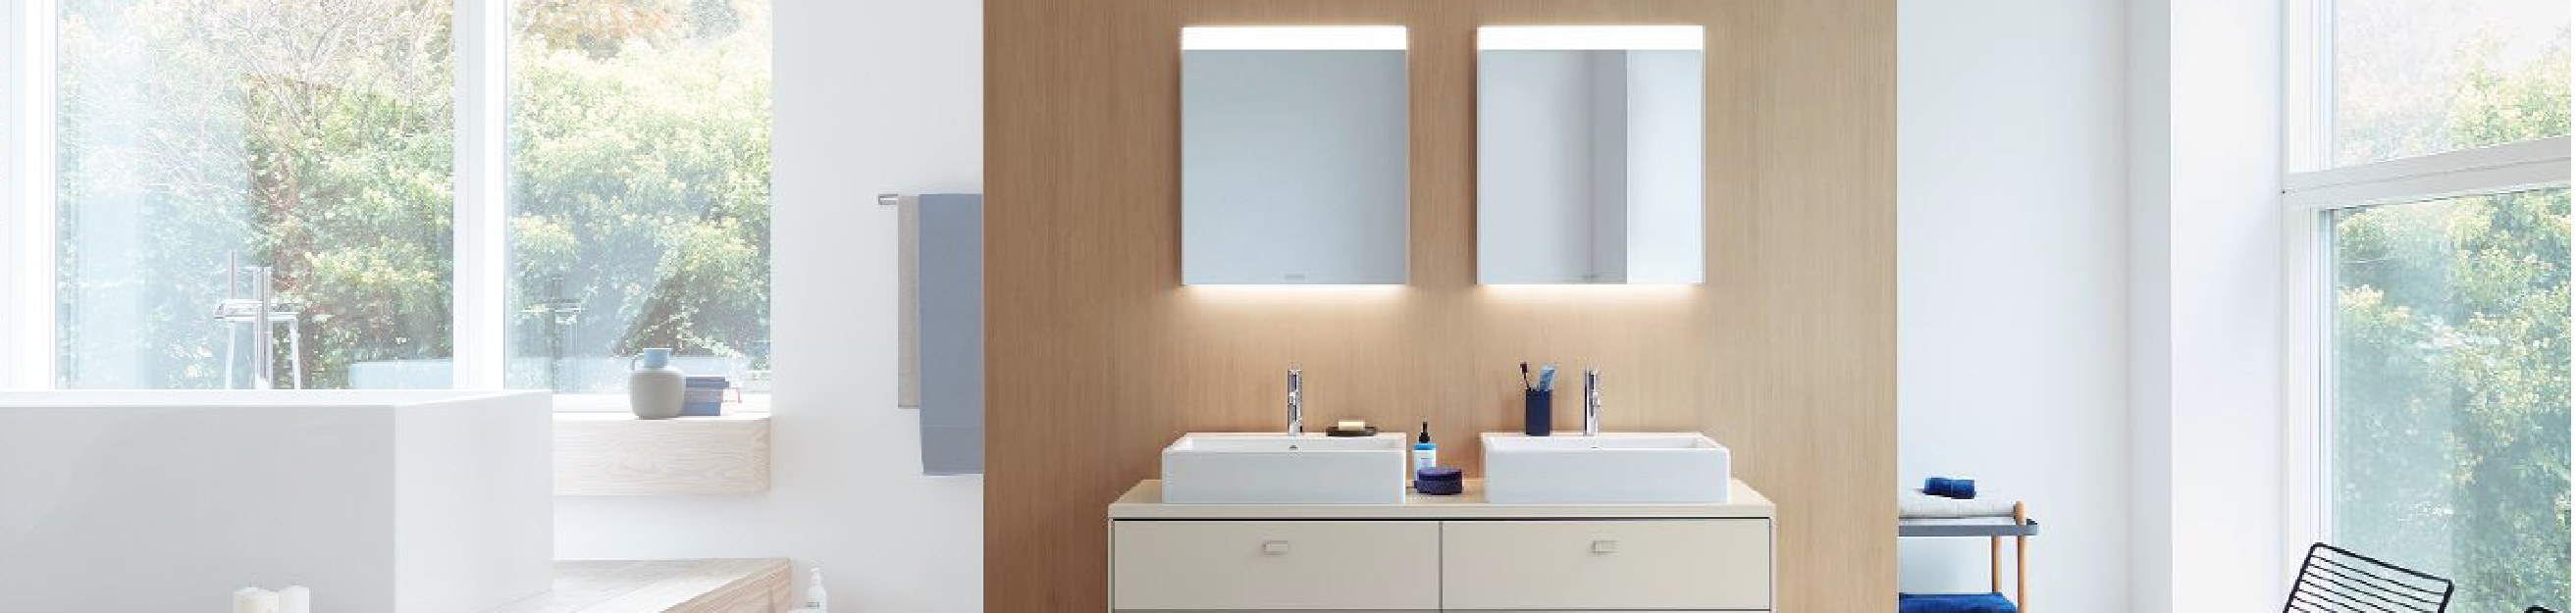 Bathrooms exuding freshness and relaxation at Plumbtile.com